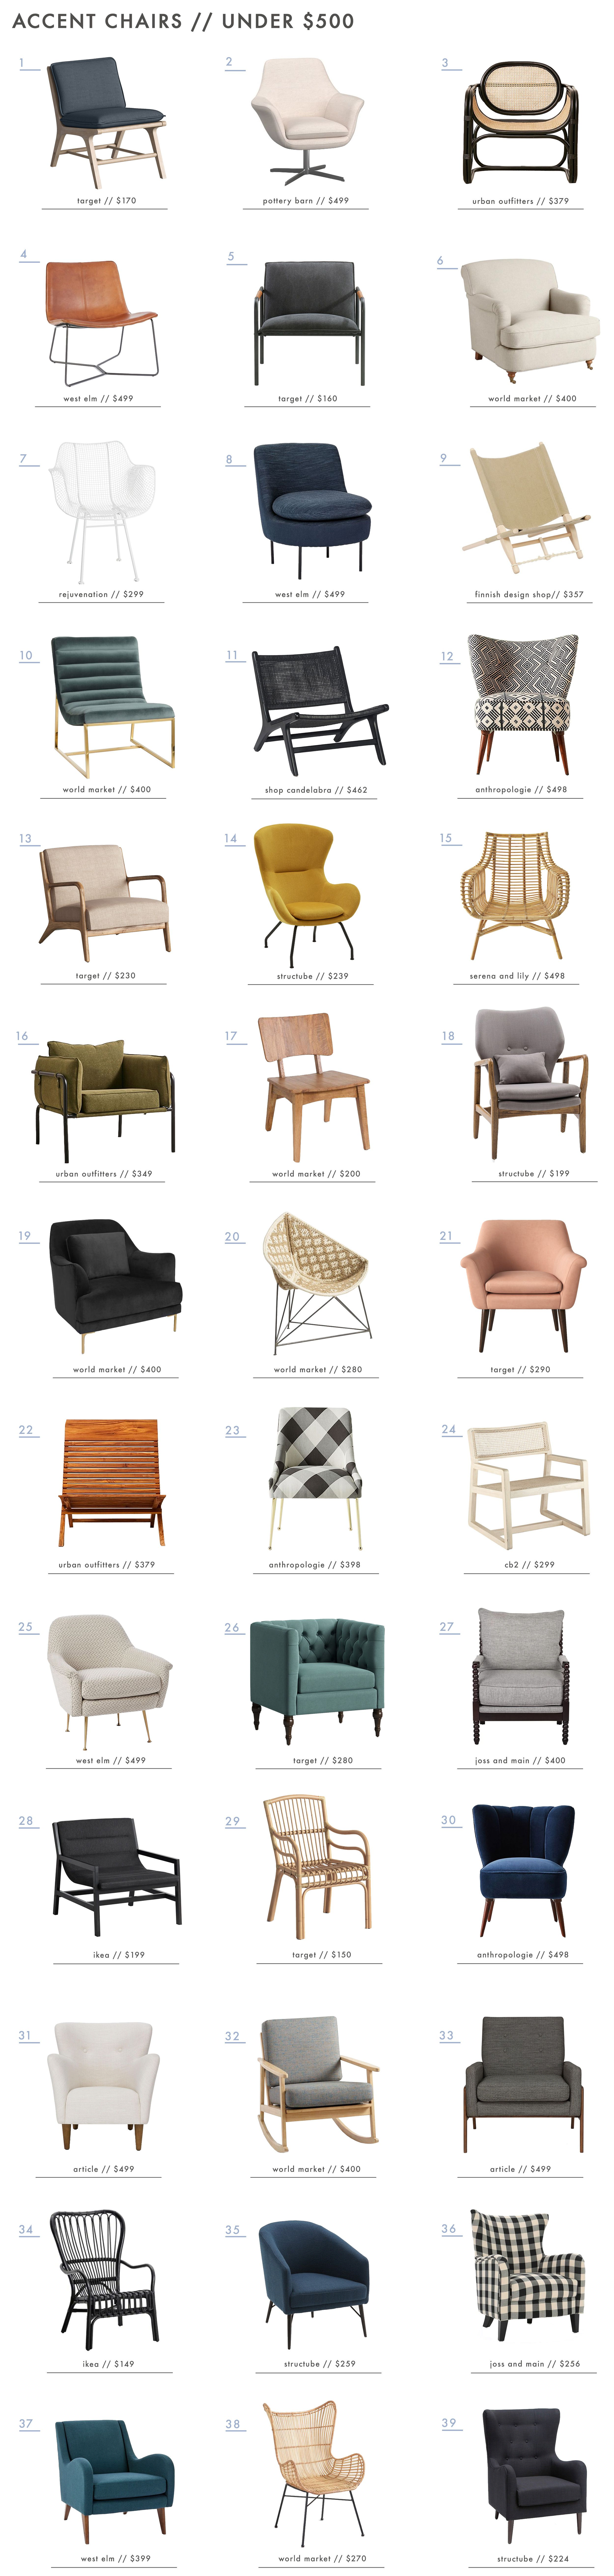 39 Of Our Favorite Accent Chairs Under 500 Rules To